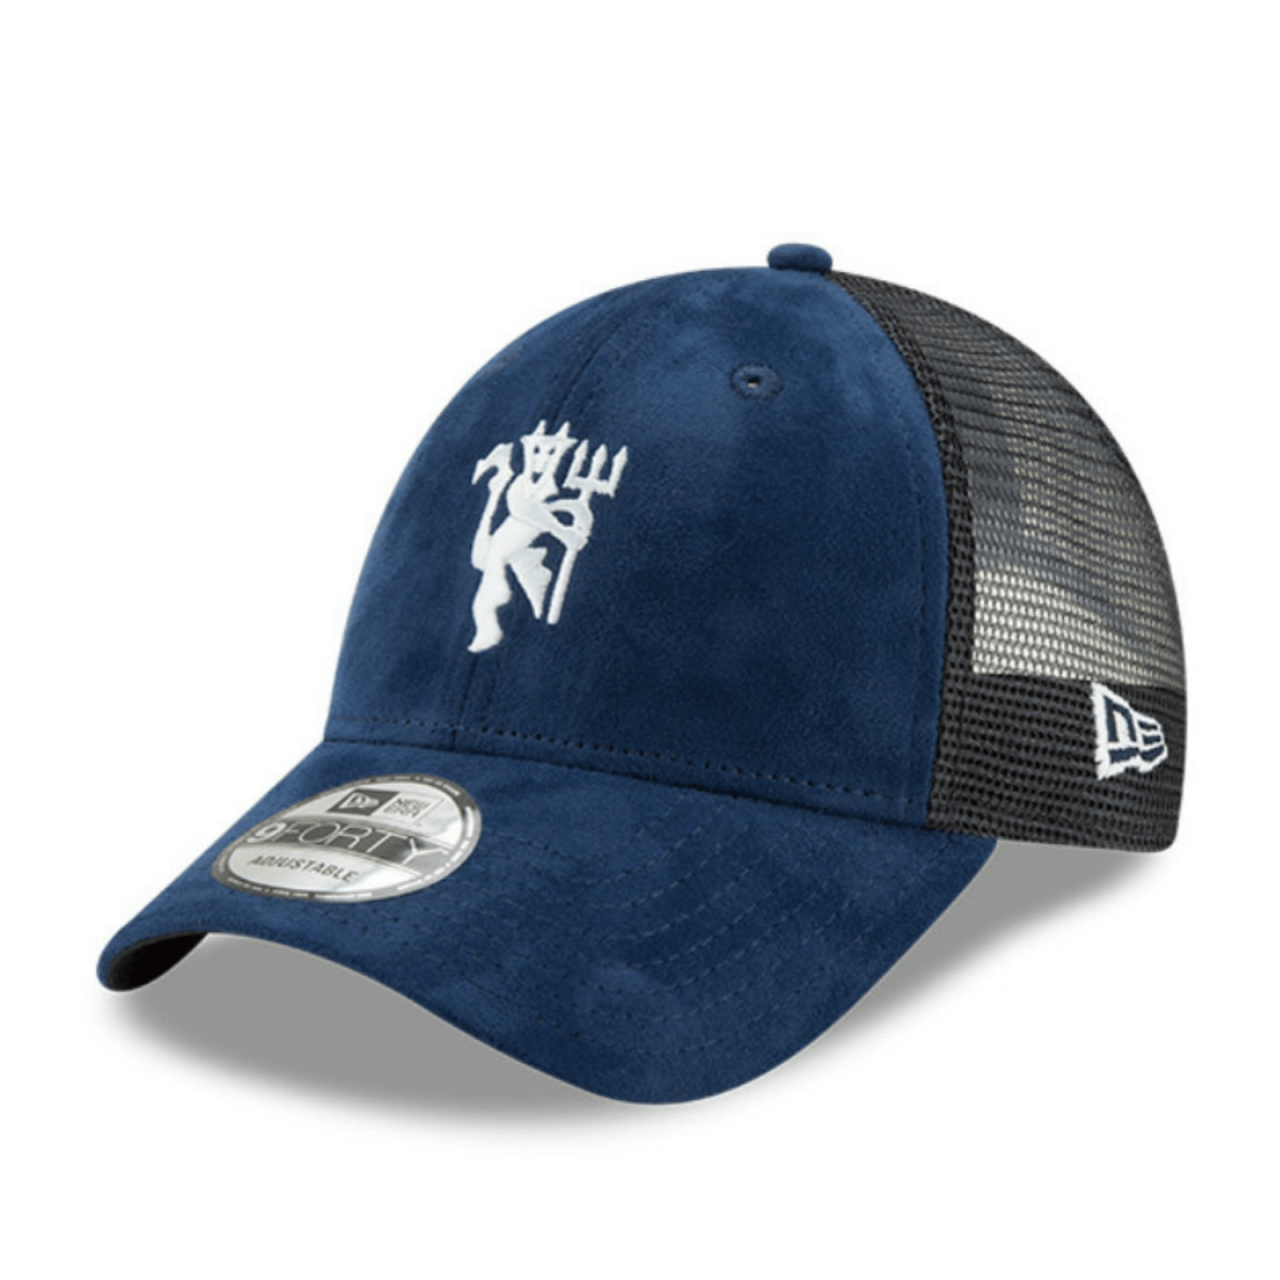 9FORTY MANCHESTER UNITED MESH NAVY CAP